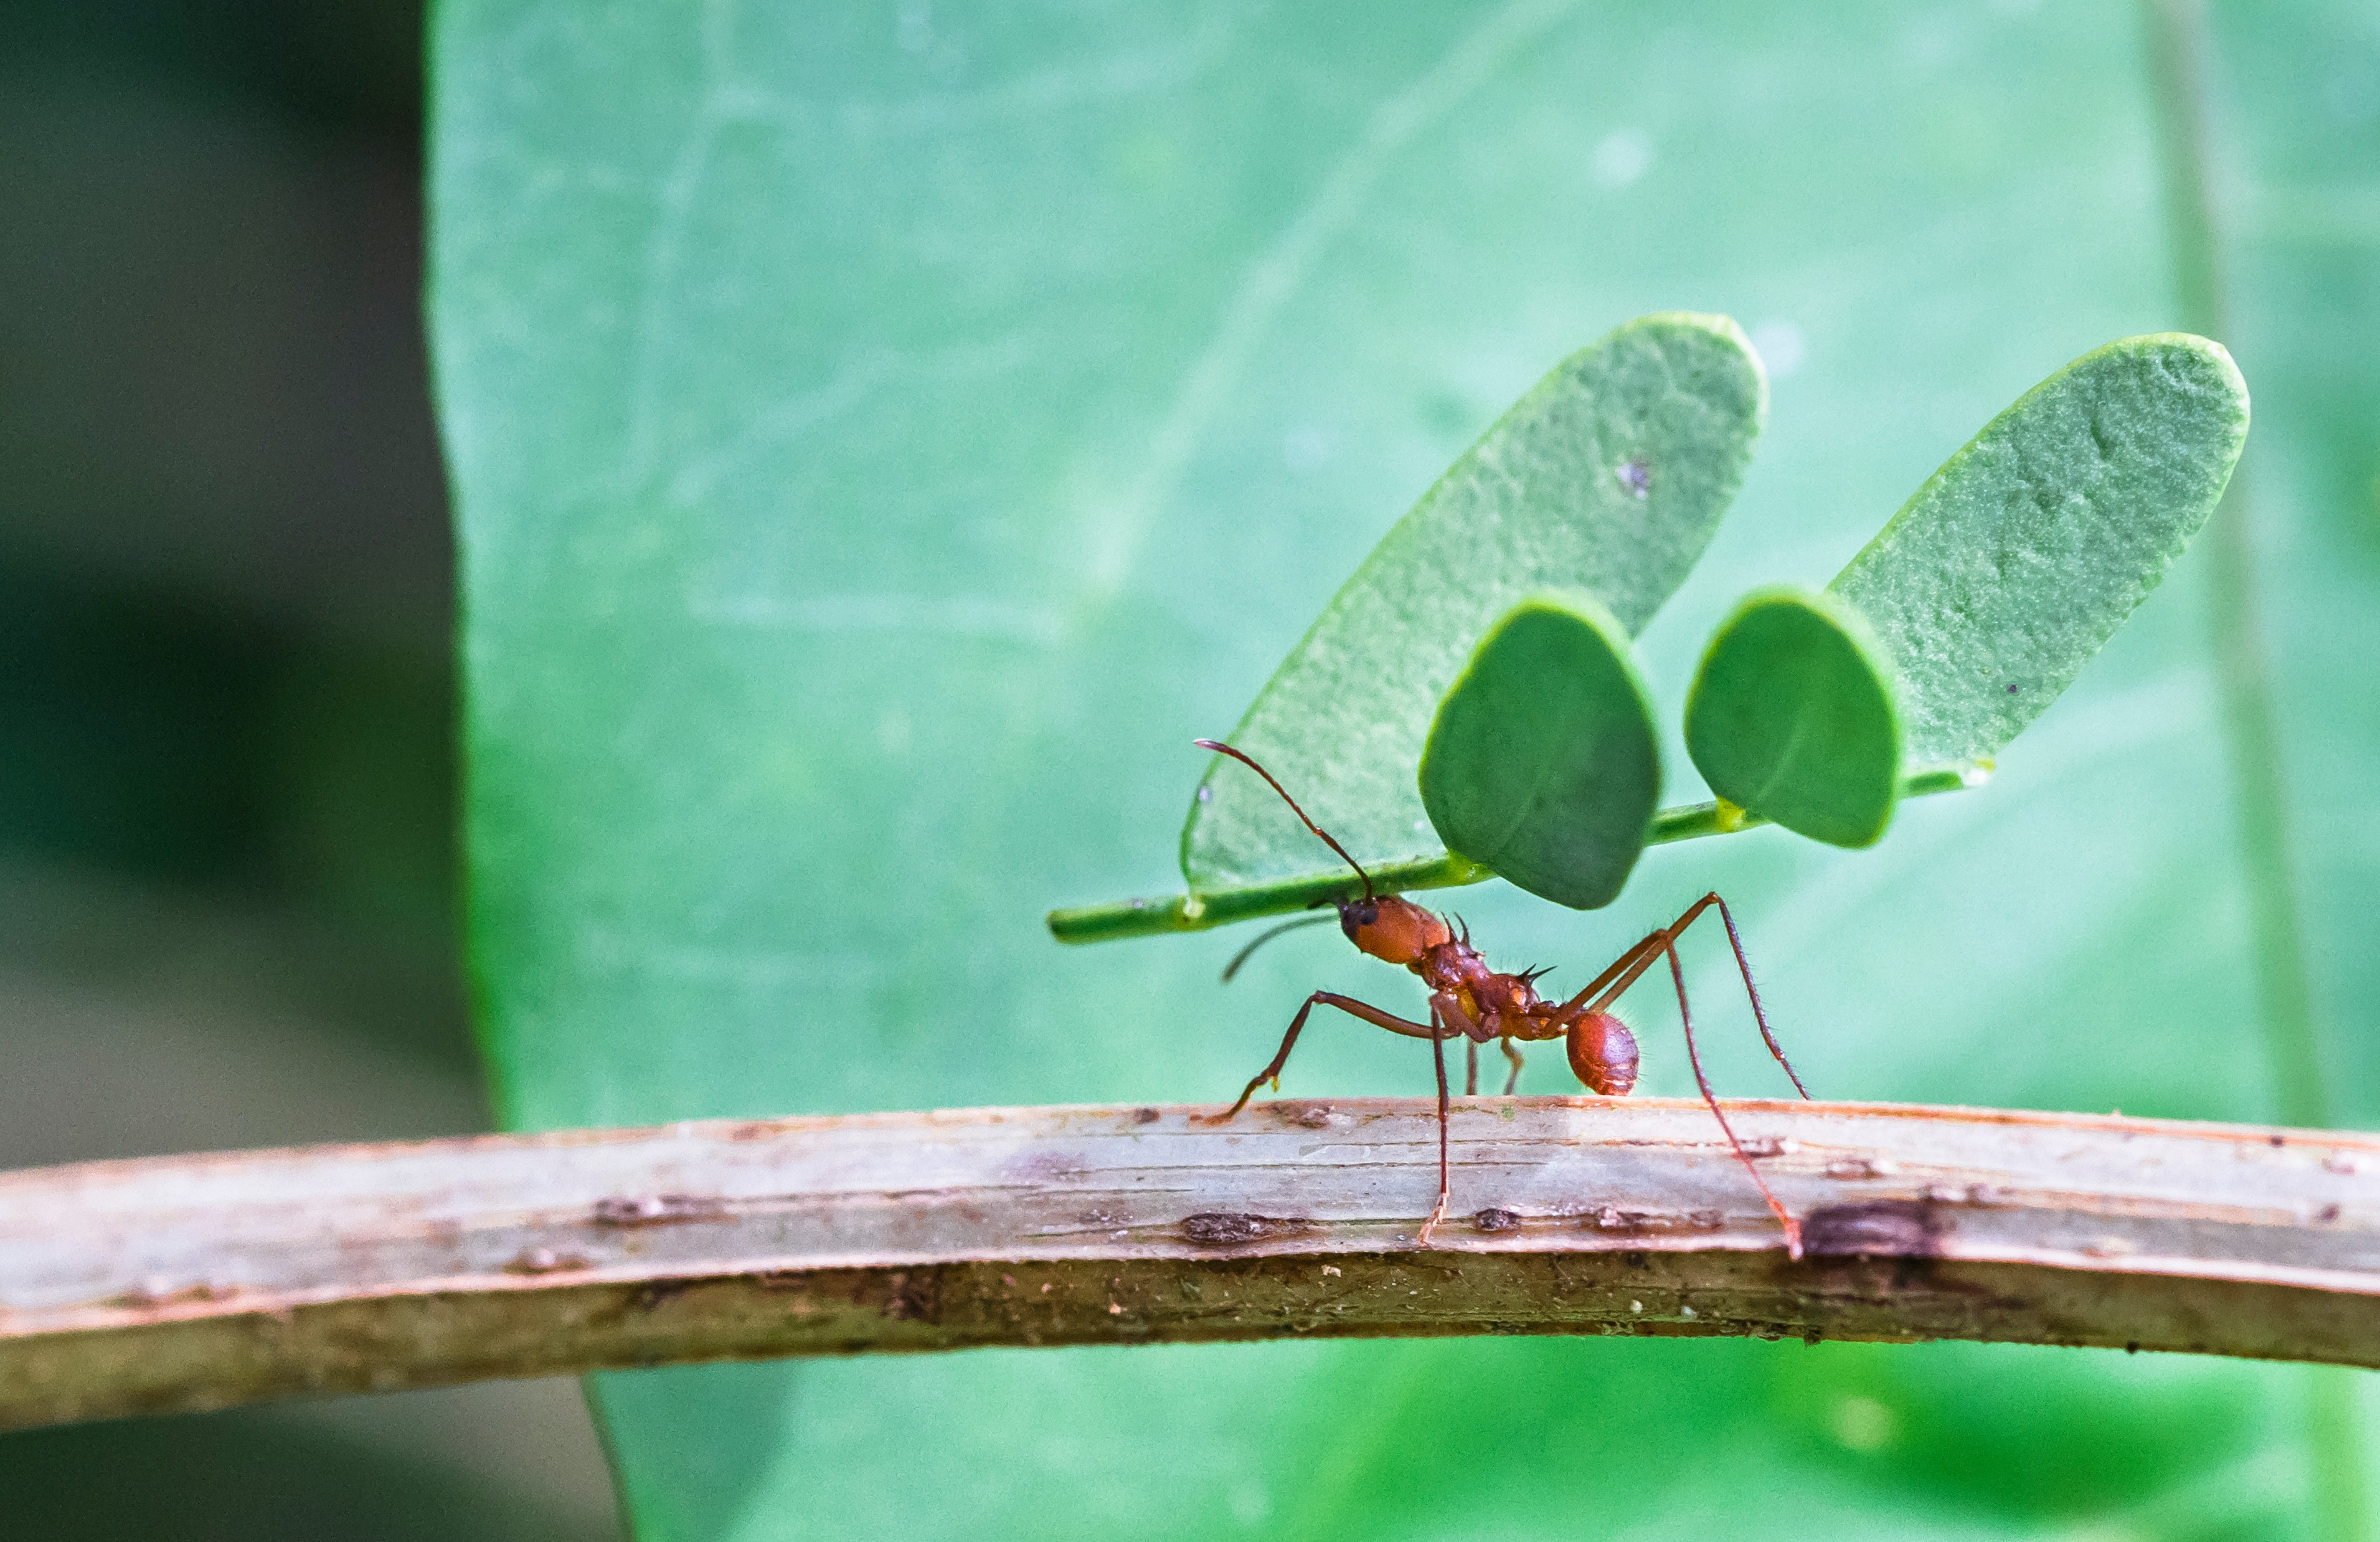 Biology All About Insects Level 1 Activity For Kids